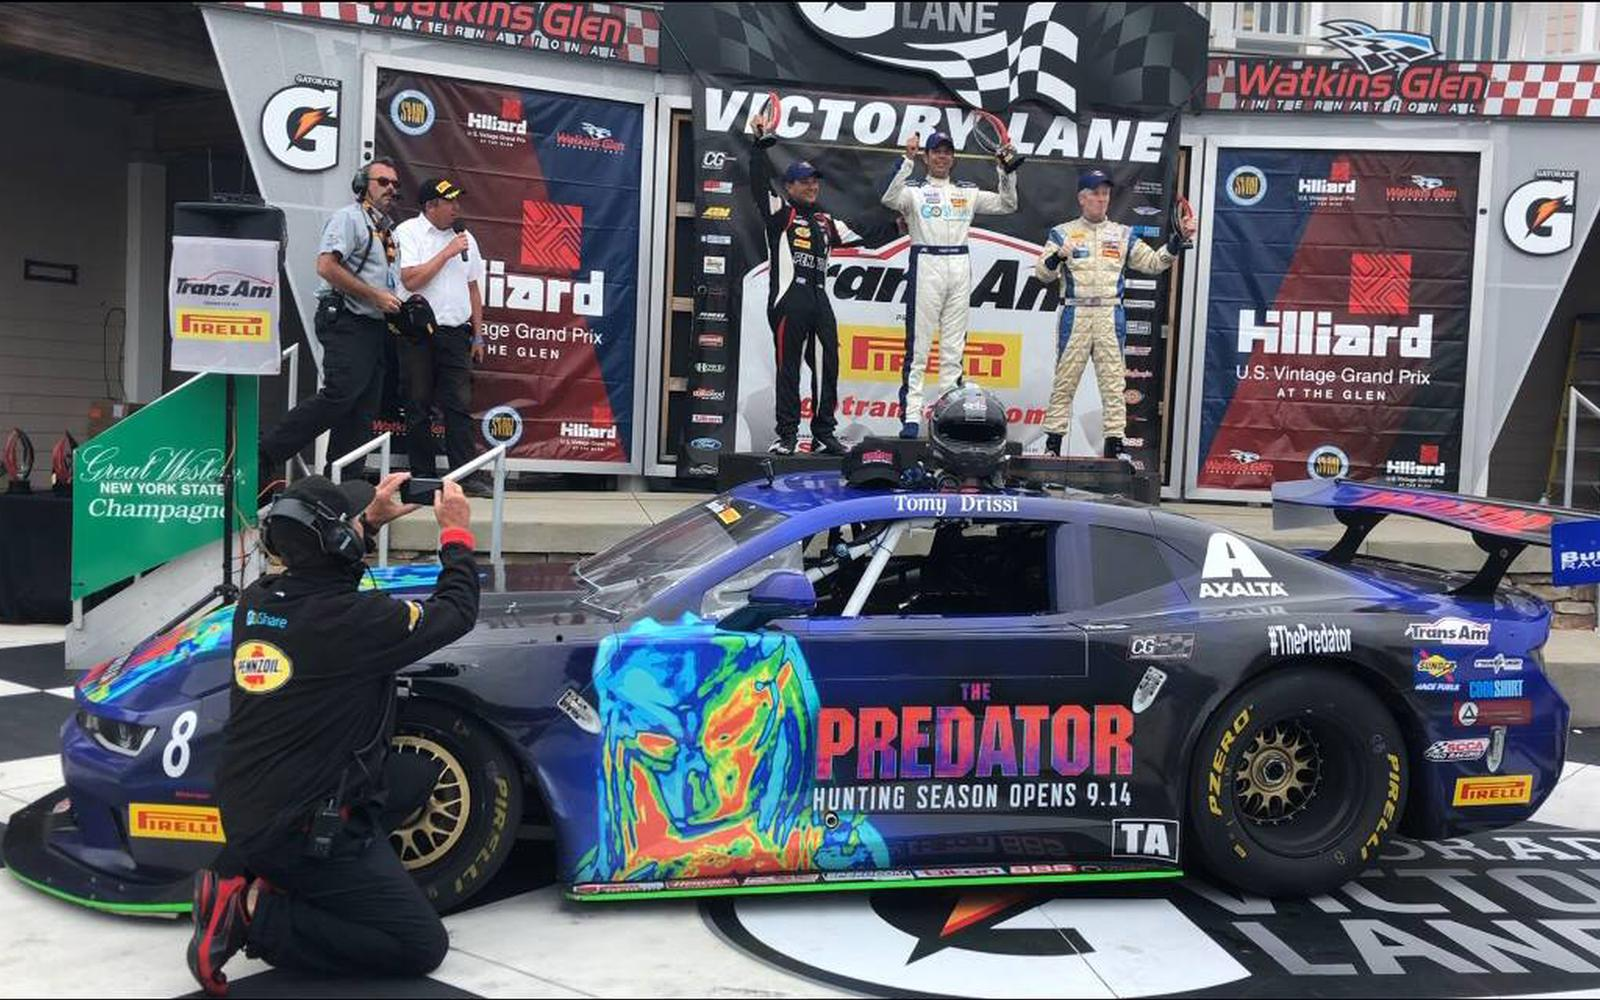 The Predator Completes The Hunt at Watkins Glen…. Drissi Takes Top Step of TransAm Podium